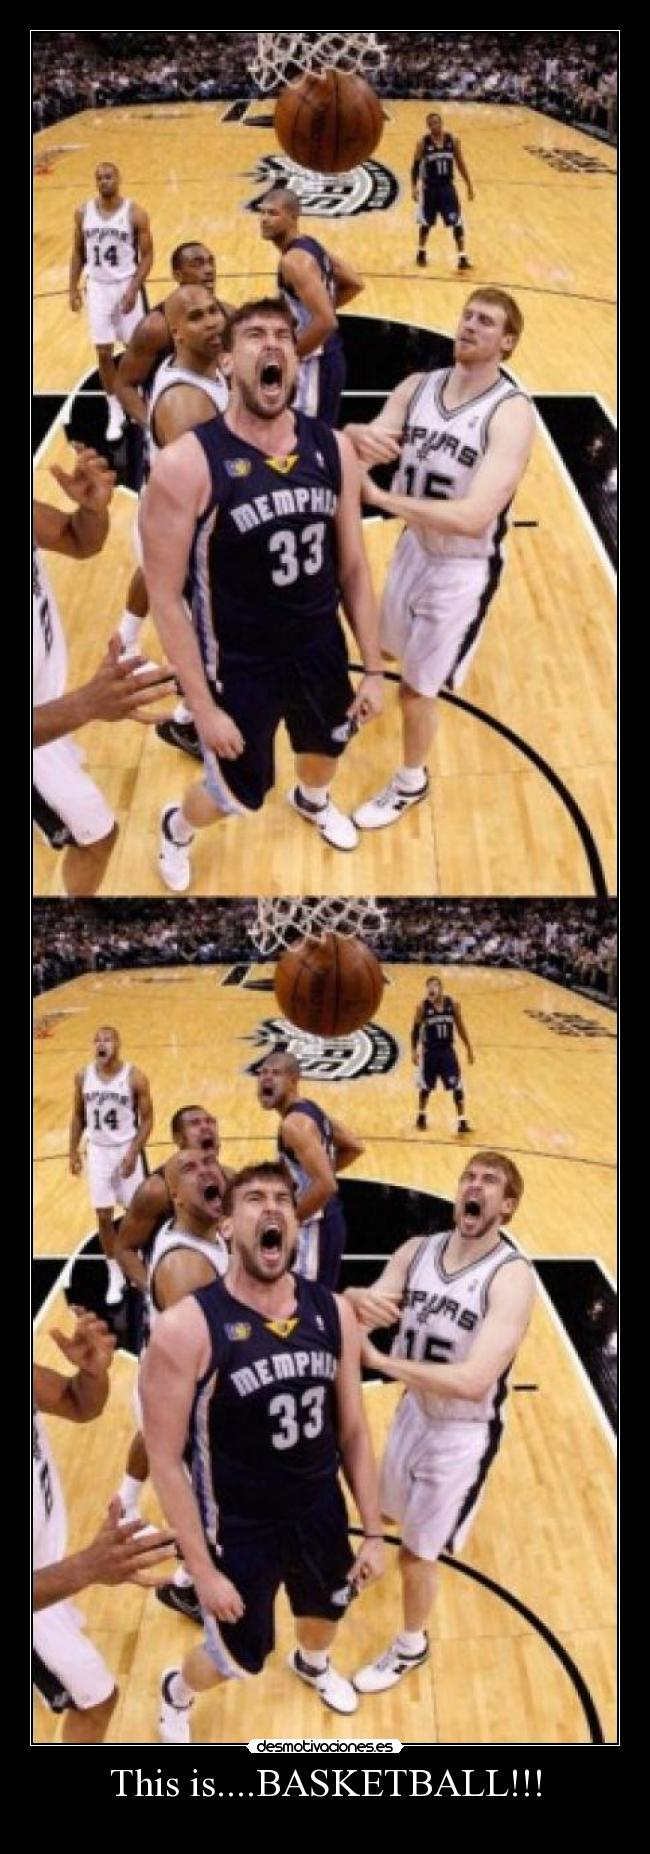 This is....BASKETBALL!!! -